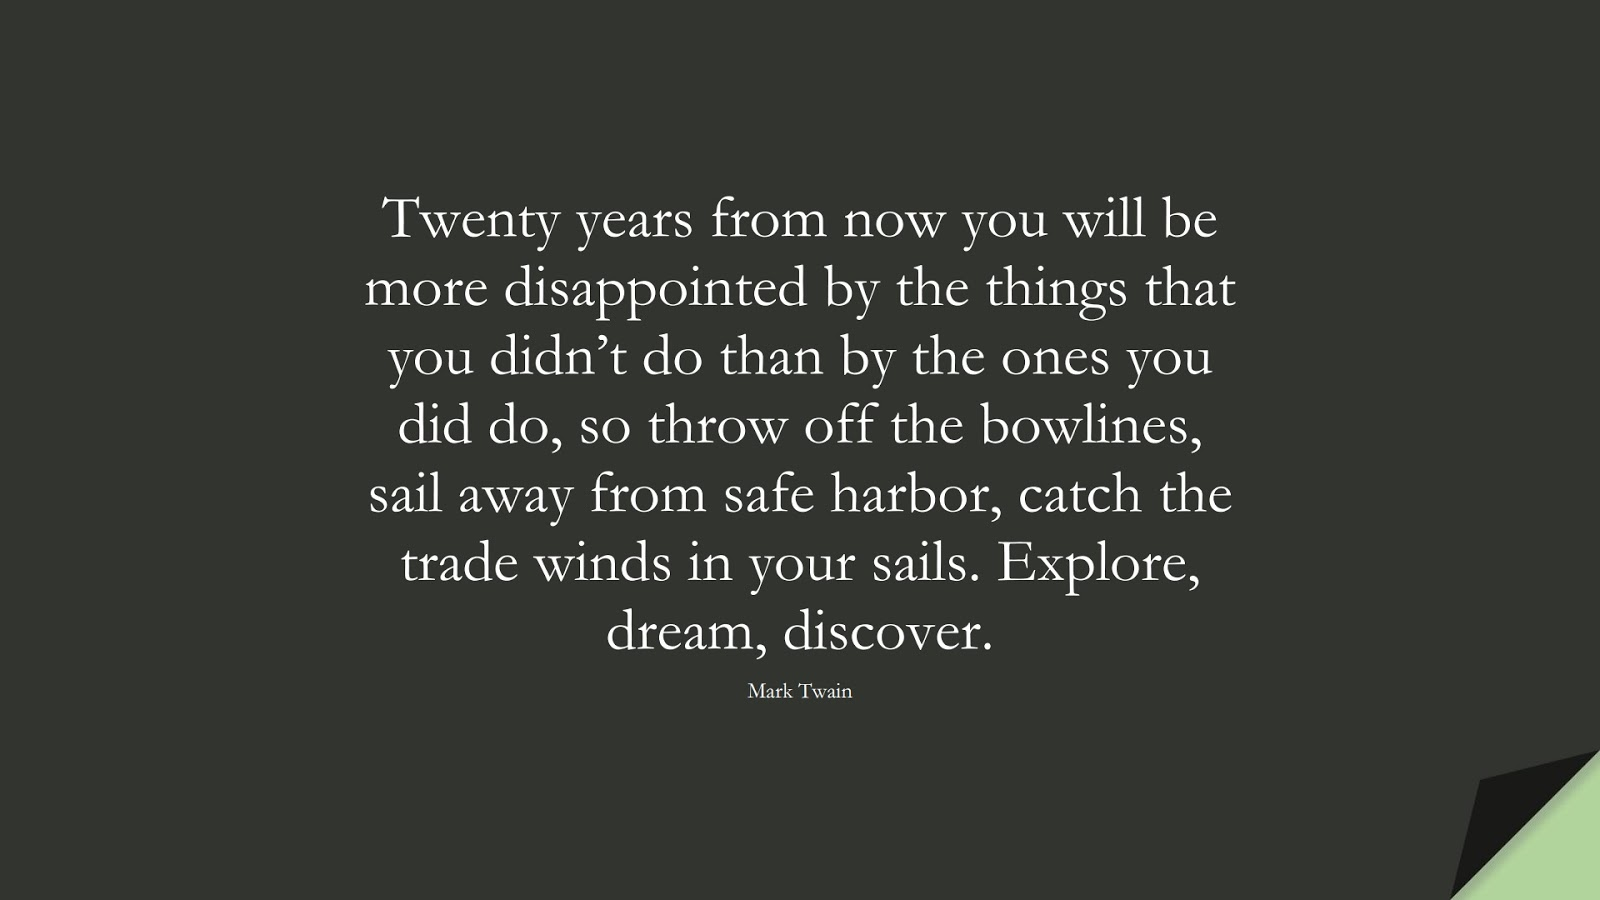 Twenty years from now you will be more disappointed by the things that you didn't do than by the ones you did do, so throw off the bowlines, sail away from safe harbor, catch the trade winds in your sails. Explore, dream, discover. (Mark Twain);  #ChangeQuotes